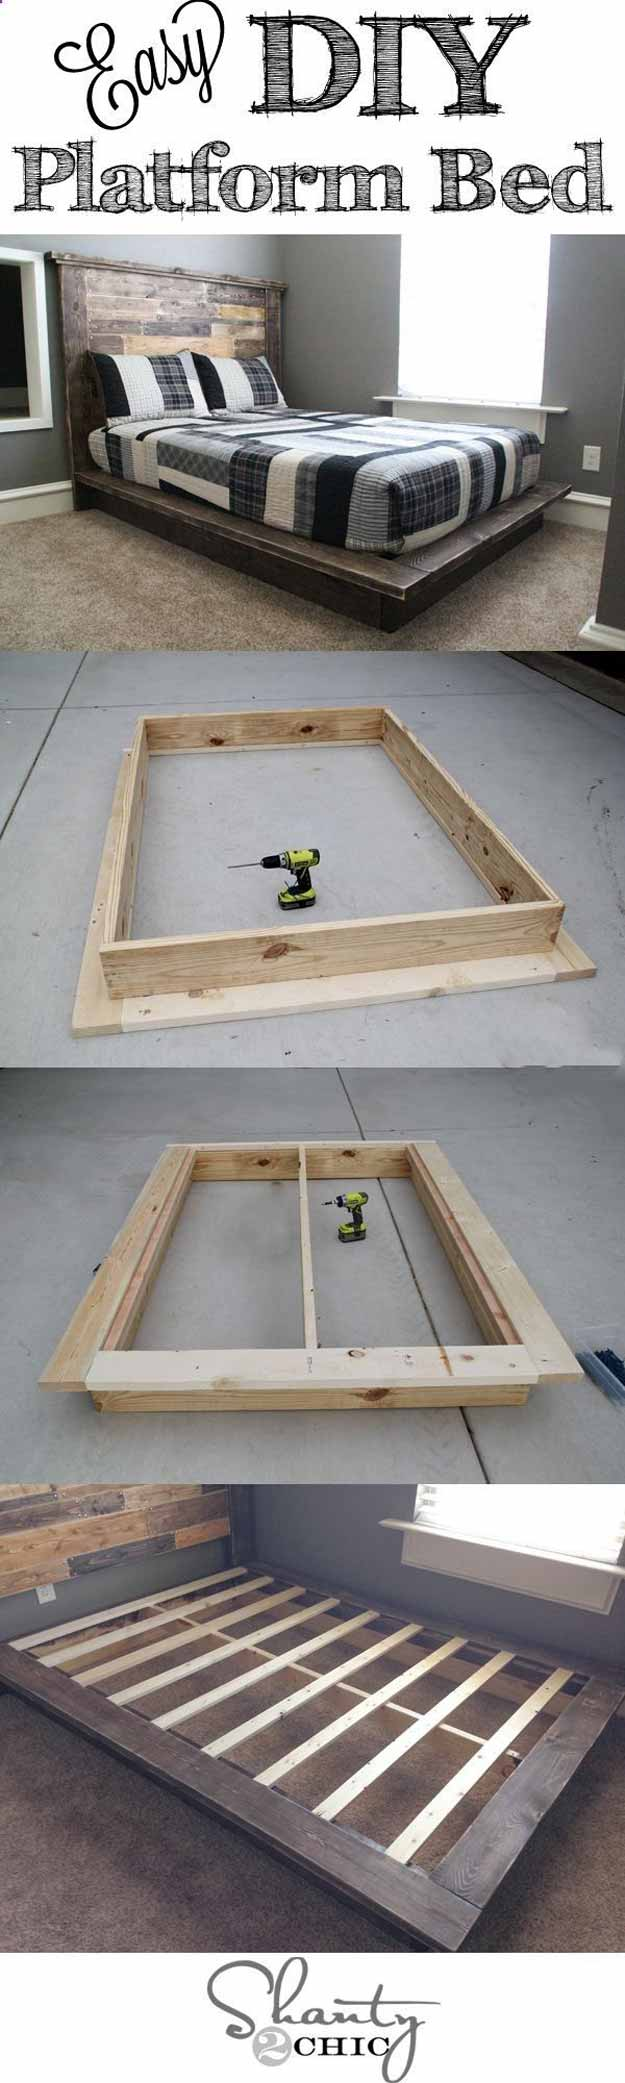 Need a new bed for your bedroom? Why not make one of these DIY platform beds? Not only would it look great but it may also be the next DIY project you're looking for. Check out these DIY platform bed ideas!